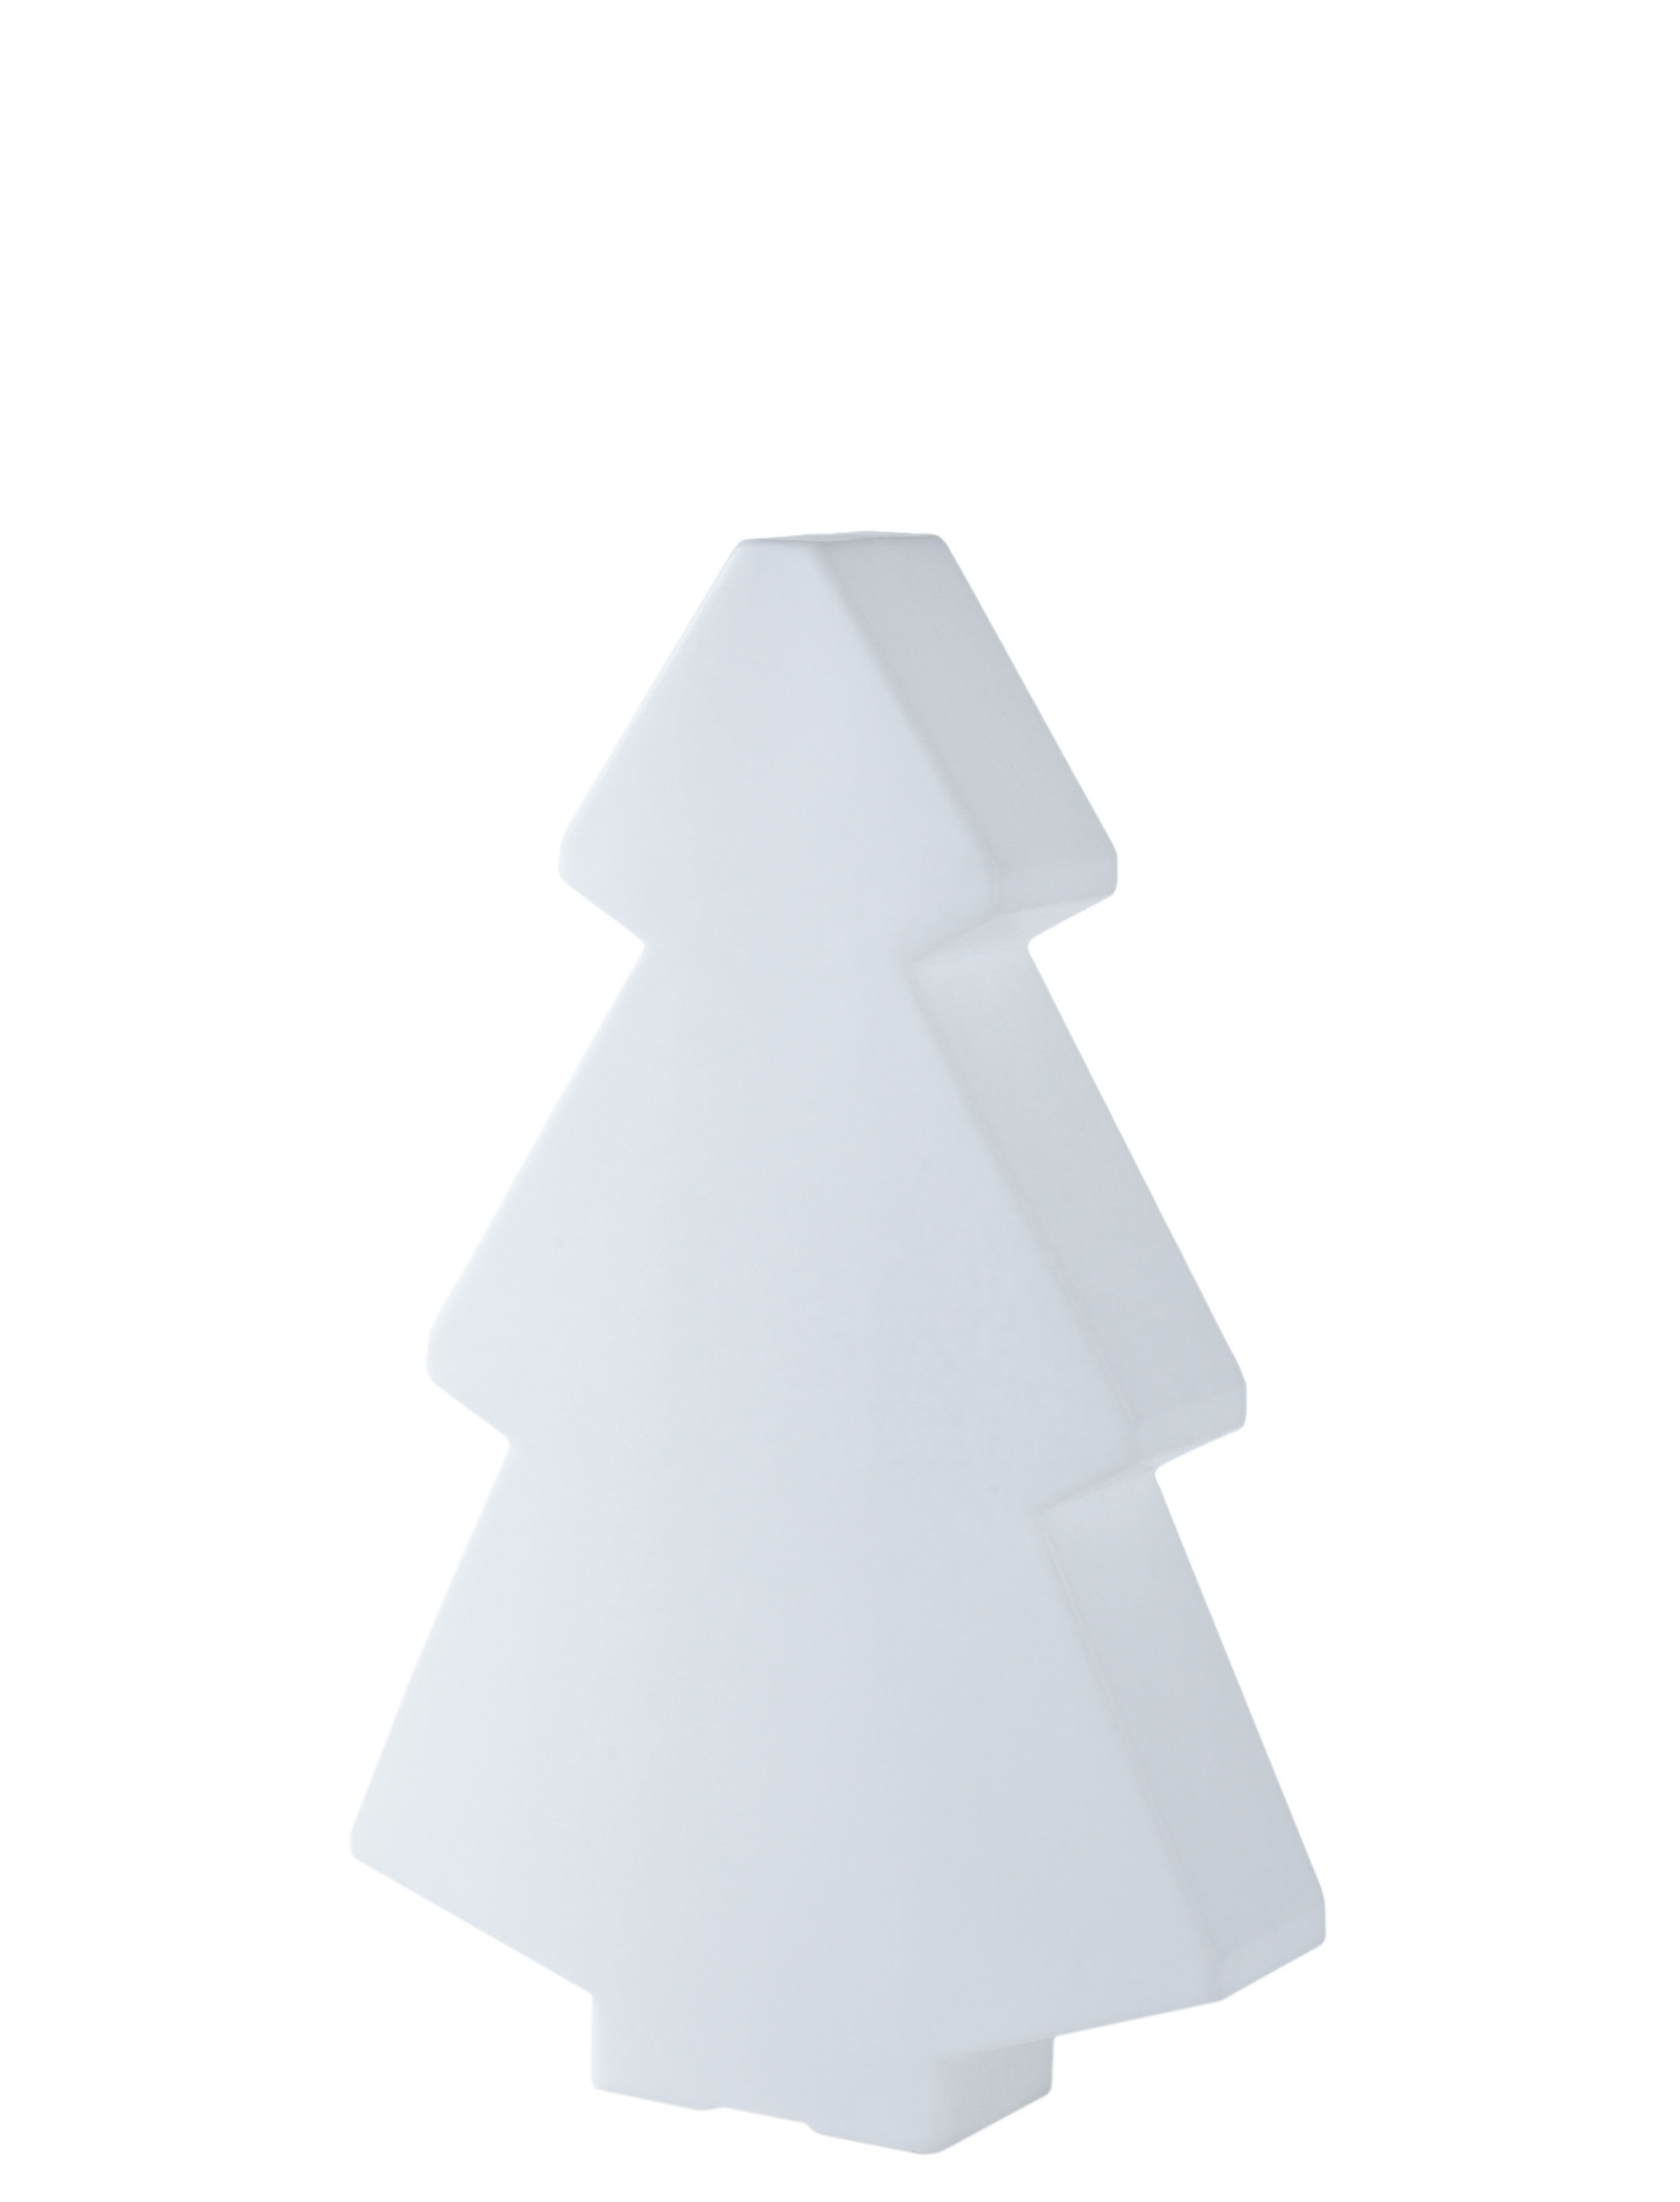 Lighting - Table Lamps - Lightree Indoor Table lamp - H 45 cm- Indoor by Slide - White - roto-moulded polyhene